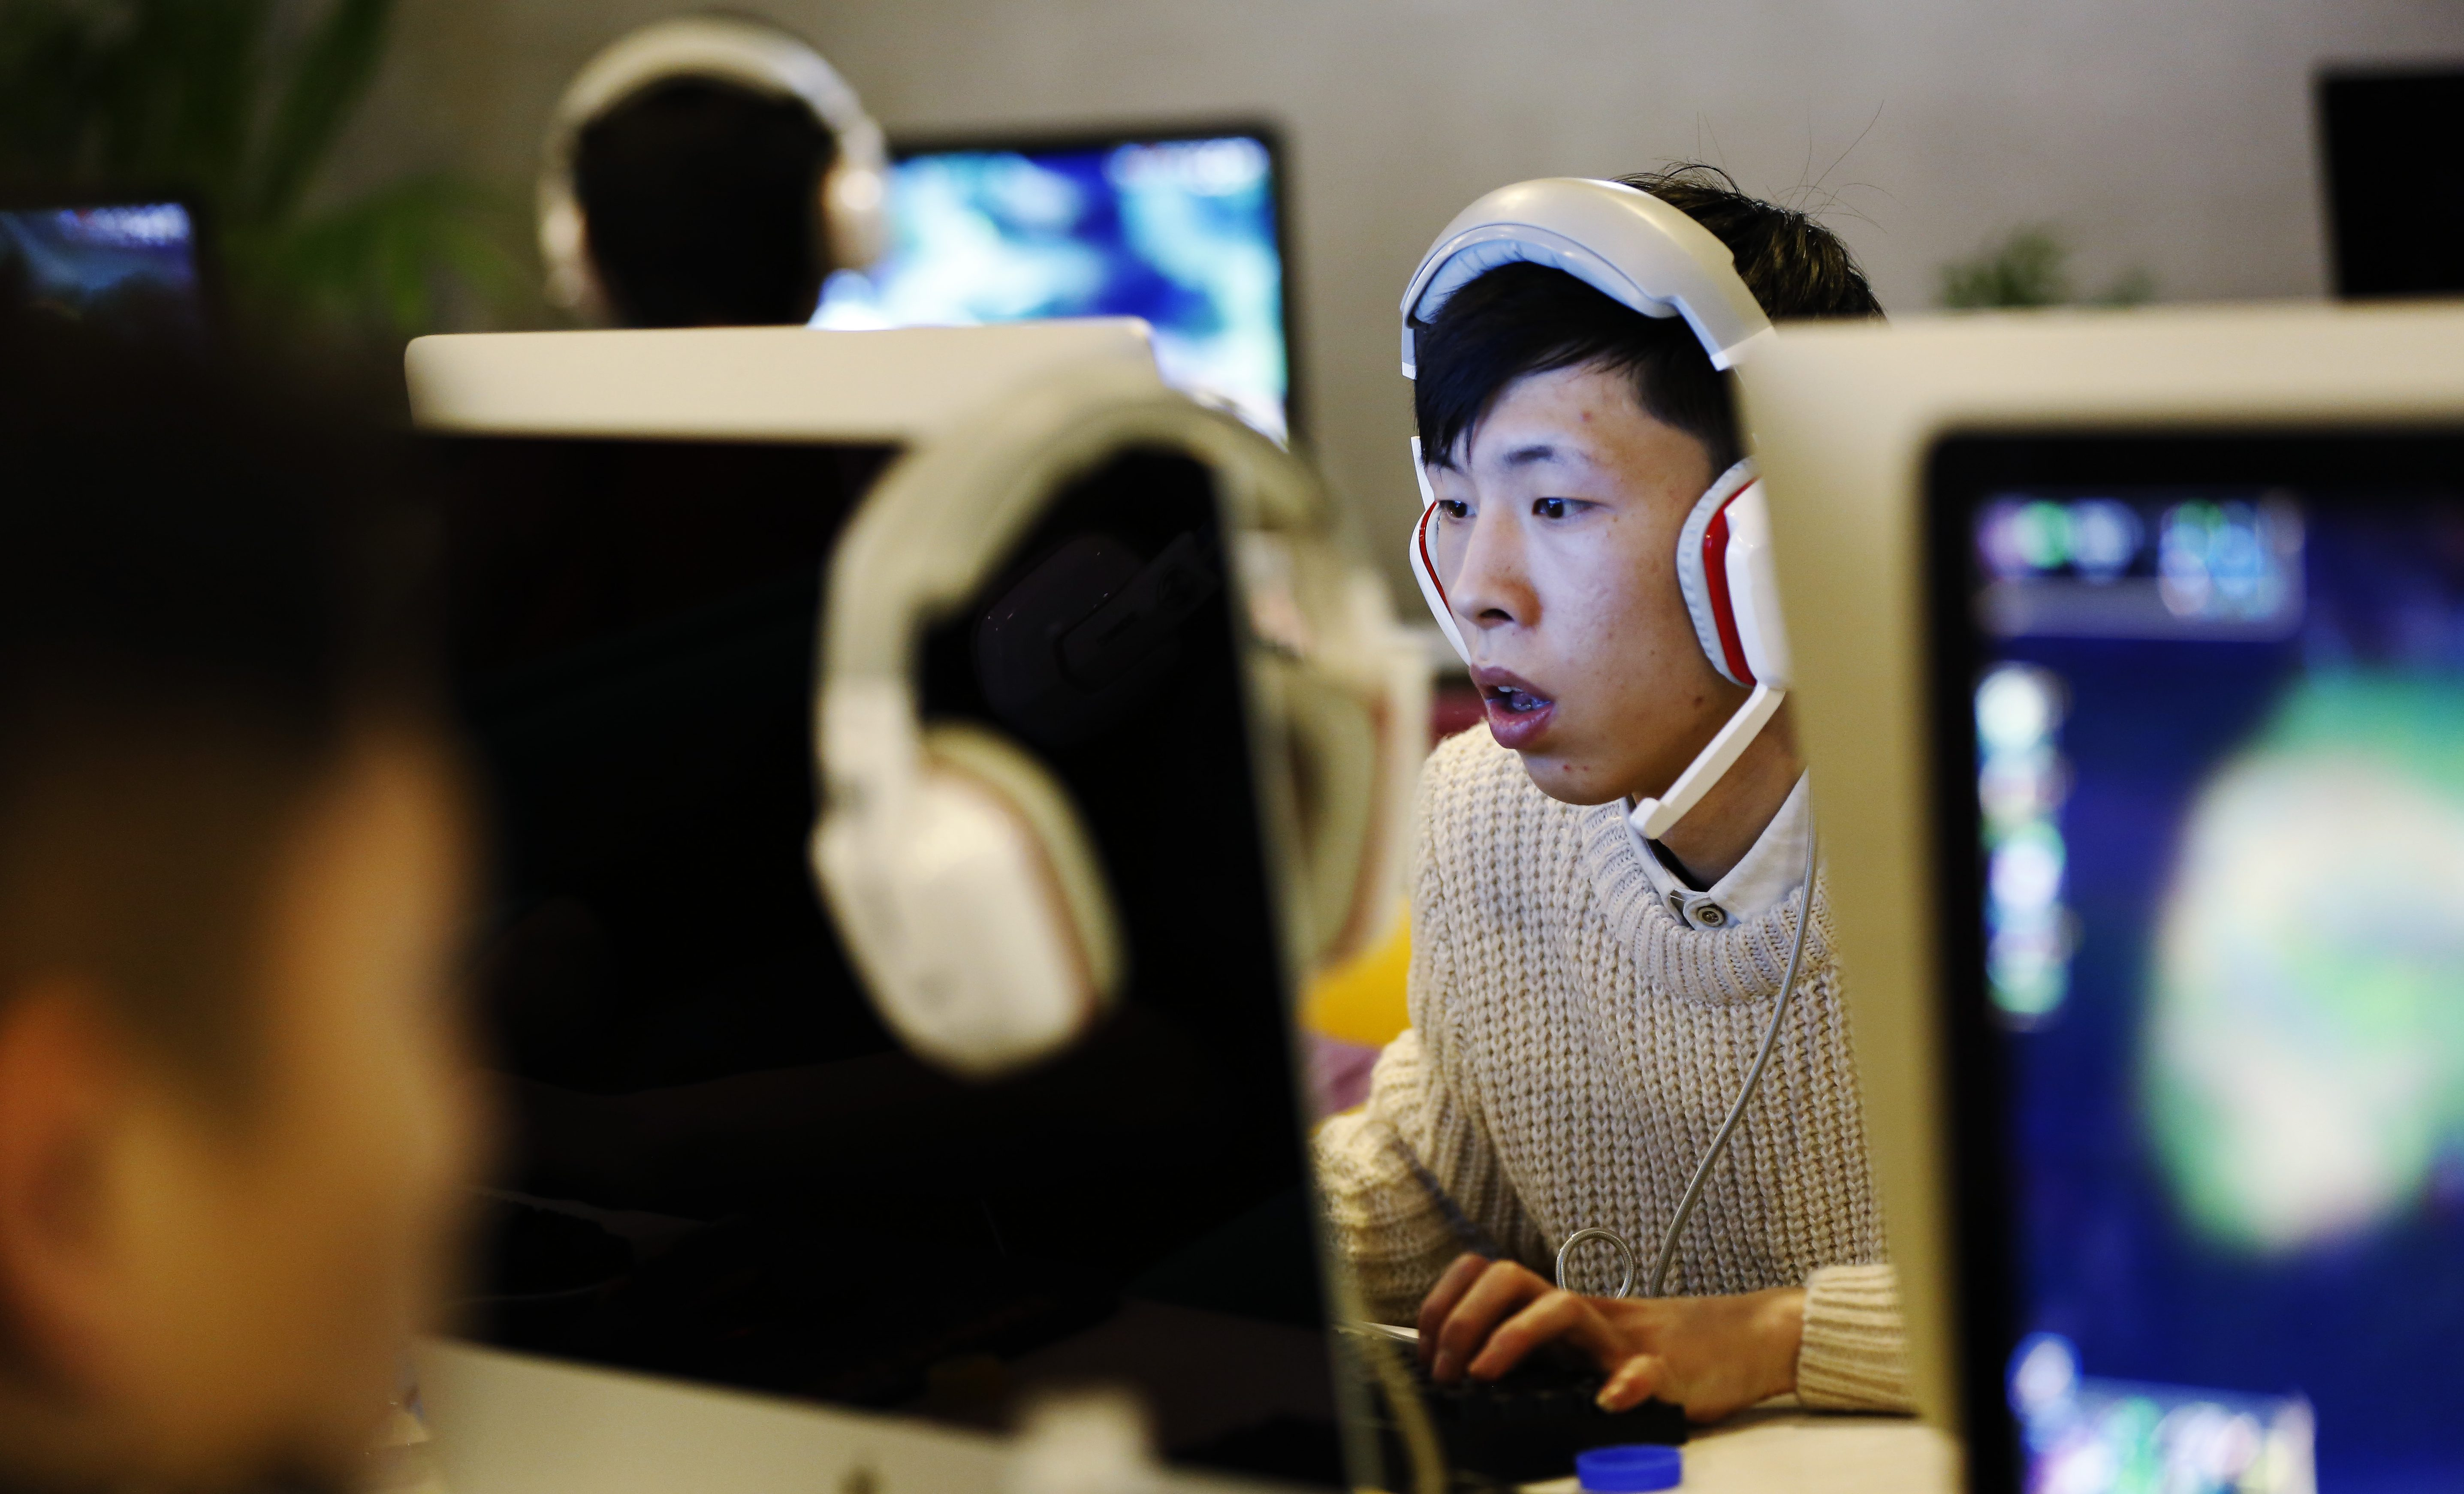 China is cracking down on VPNs, making it harder to jump the